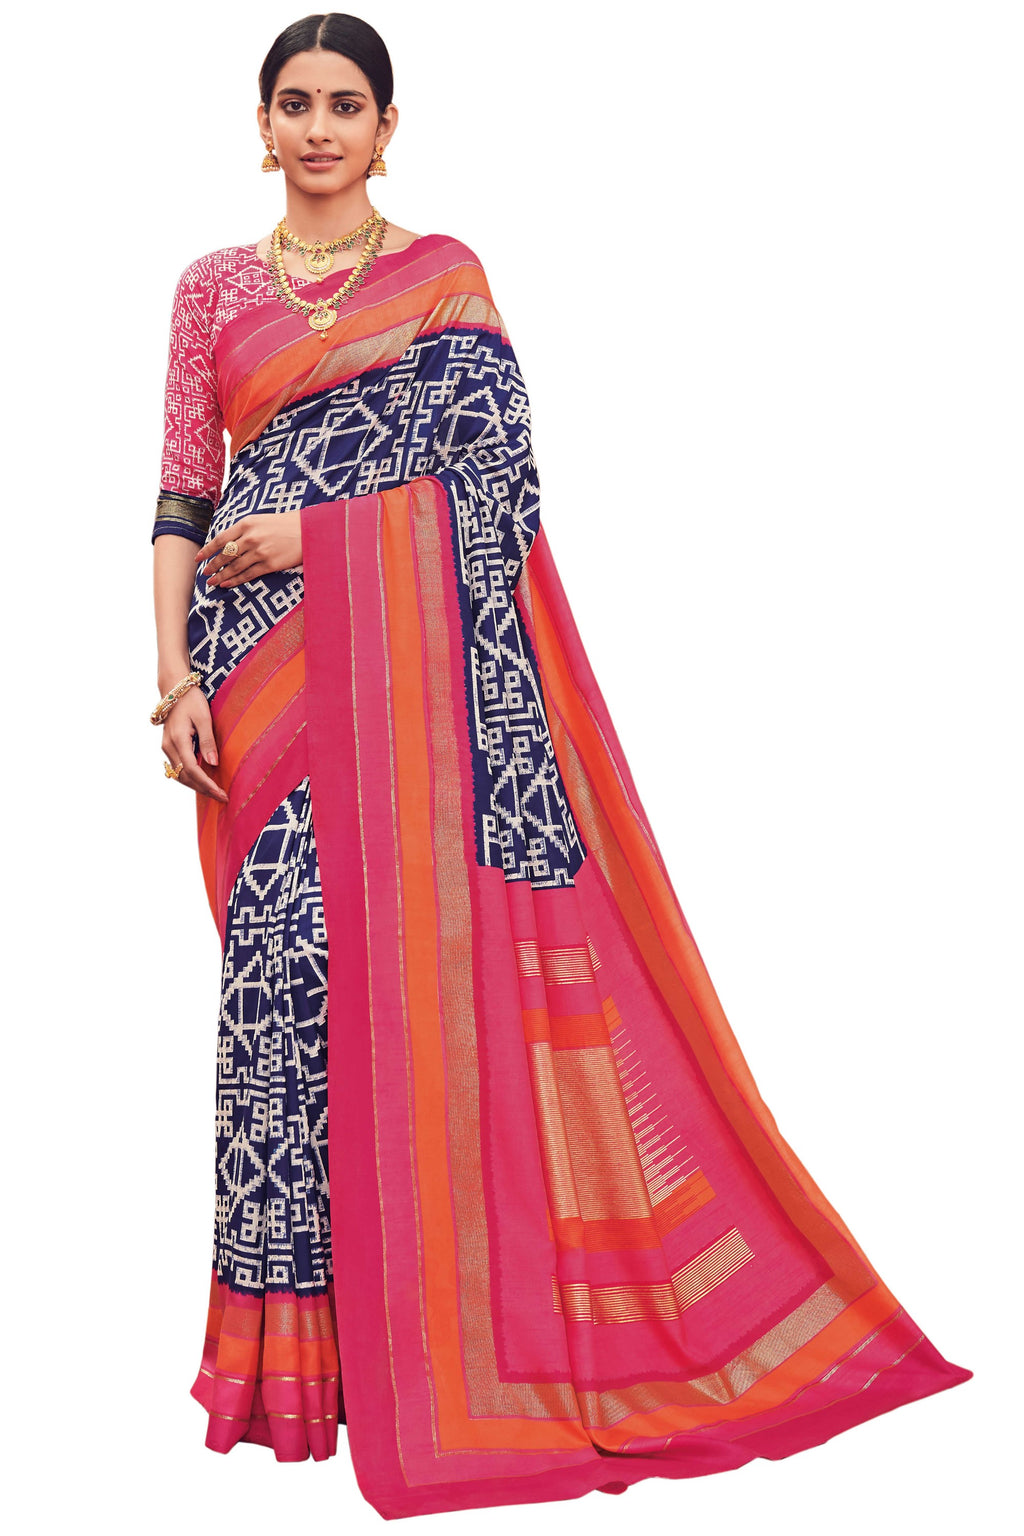 Blue & Pink Color Bhagalpuri Festive & Party Wear Sarees NYF-8661